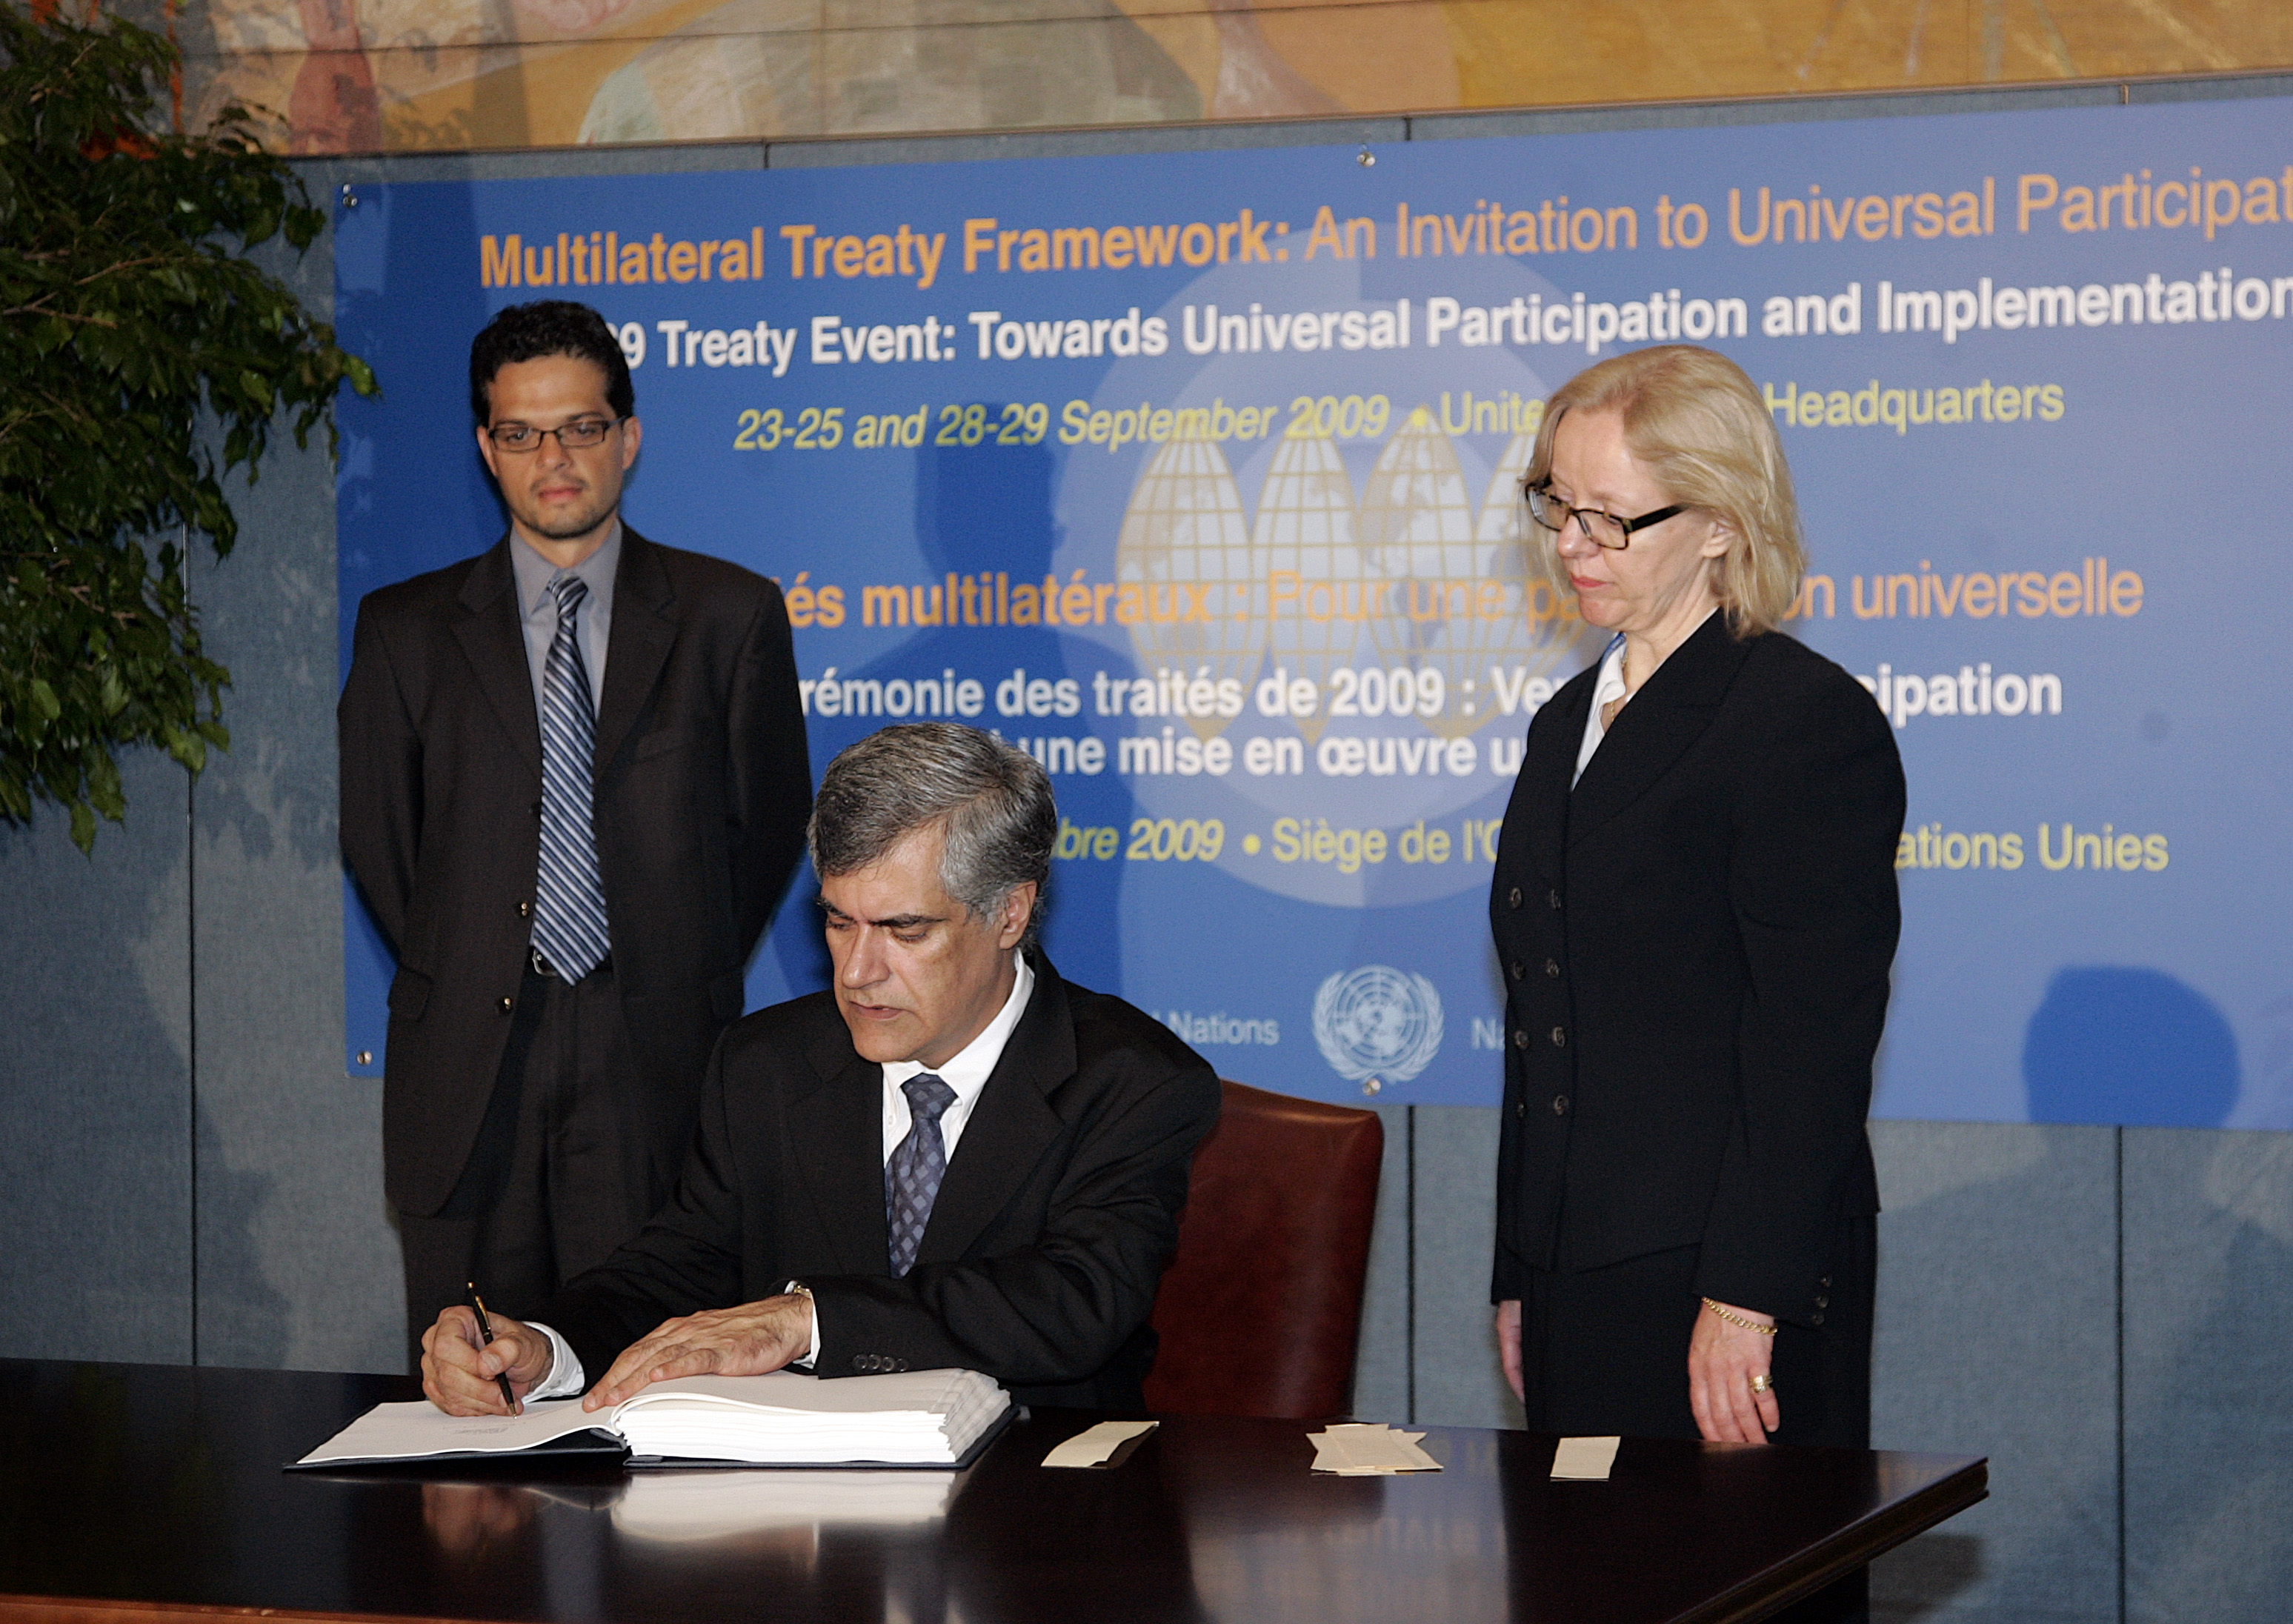 "Pedro Vaz (seated), Minister of Foreign Affairs of Uruguay, signs the treaty ""Optional Protocol to the International Convention on Economic, Social and Cultural Rights"" as part of the 2009 Treaty Event. During the event countries are invited to sign, ratify or accede to multilateral treaties. UN Photo/Devra Berkowitz"